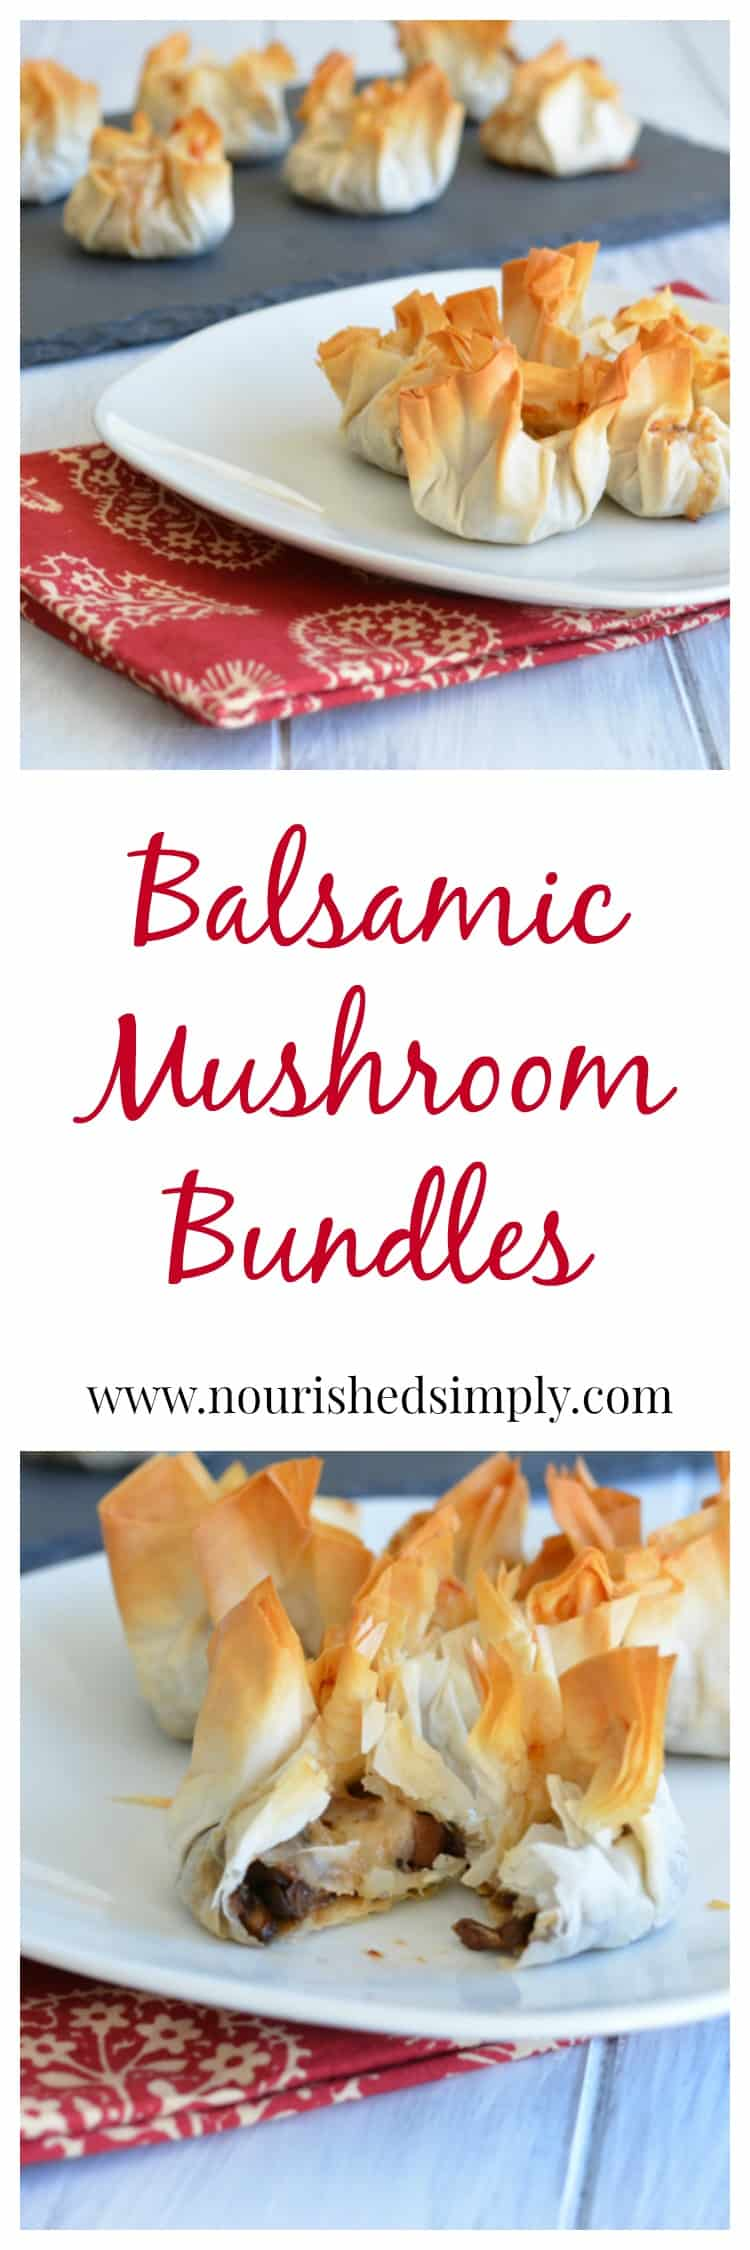 Balsamic Mushroom Bundles, a perfect meatless appetizer to add to your holiday party recipe list.